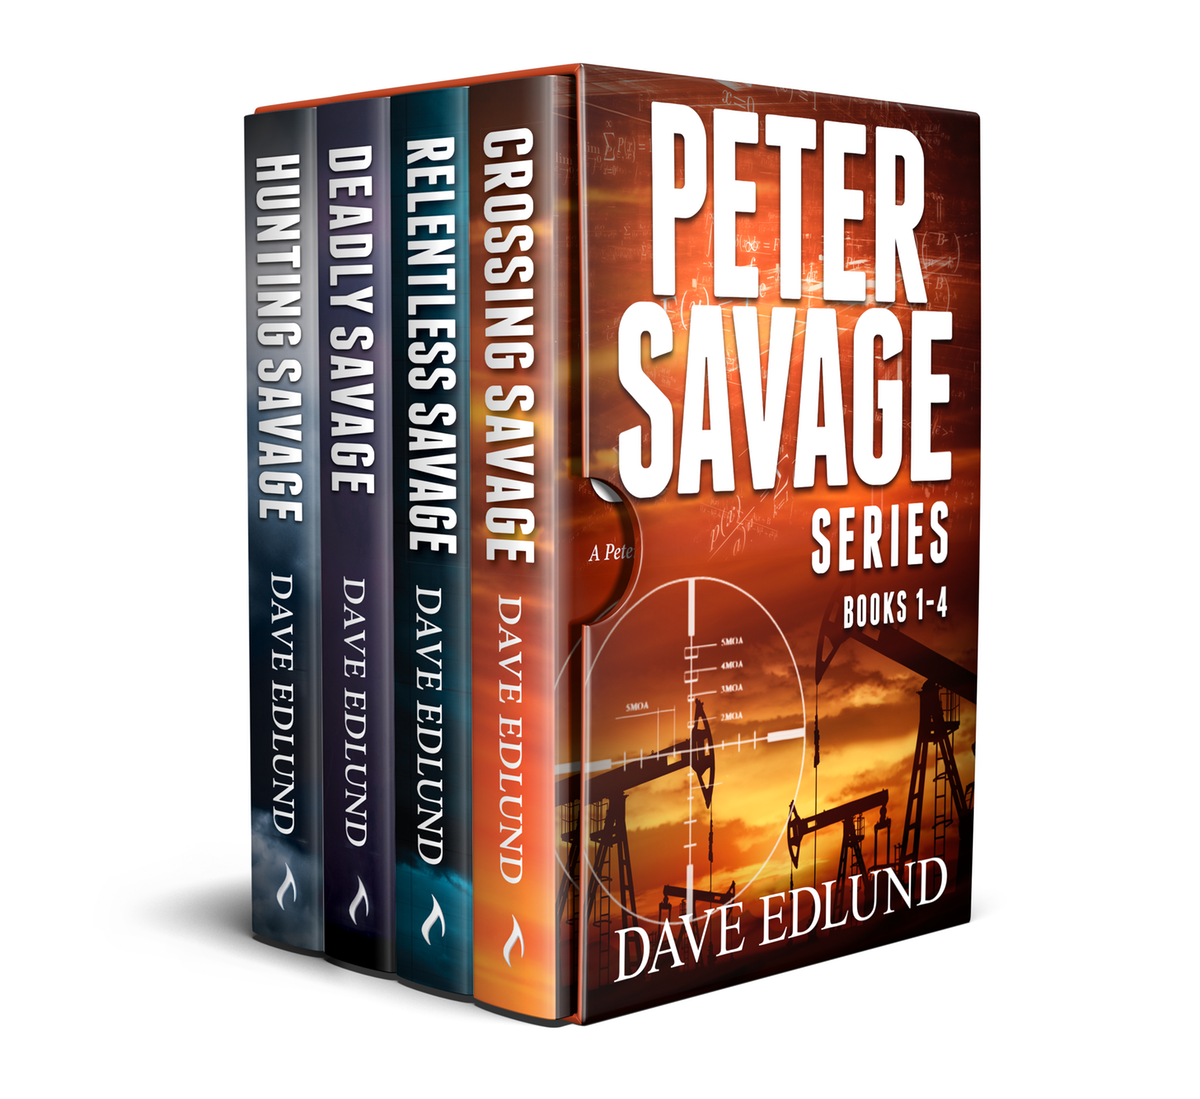 Box Set Graphic for 4 Titles in Series